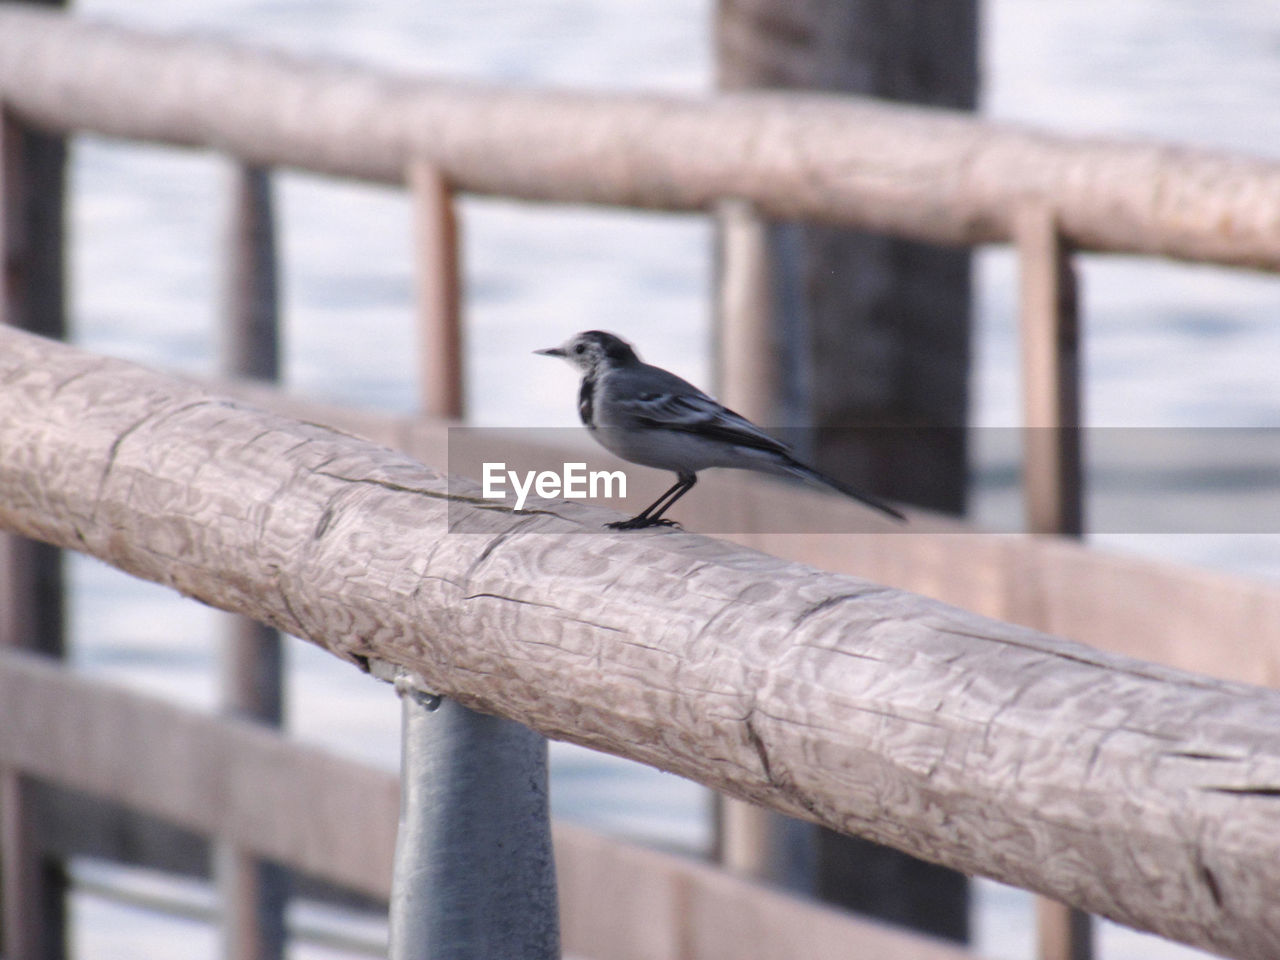 bird, animal wildlife, vertebrate, animal, animal themes, animals in the wild, perching, focus on foreground, railing, one animal, day, metal, no people, outdoors, boundary, close-up, fence, architecture, barrier, wood - material